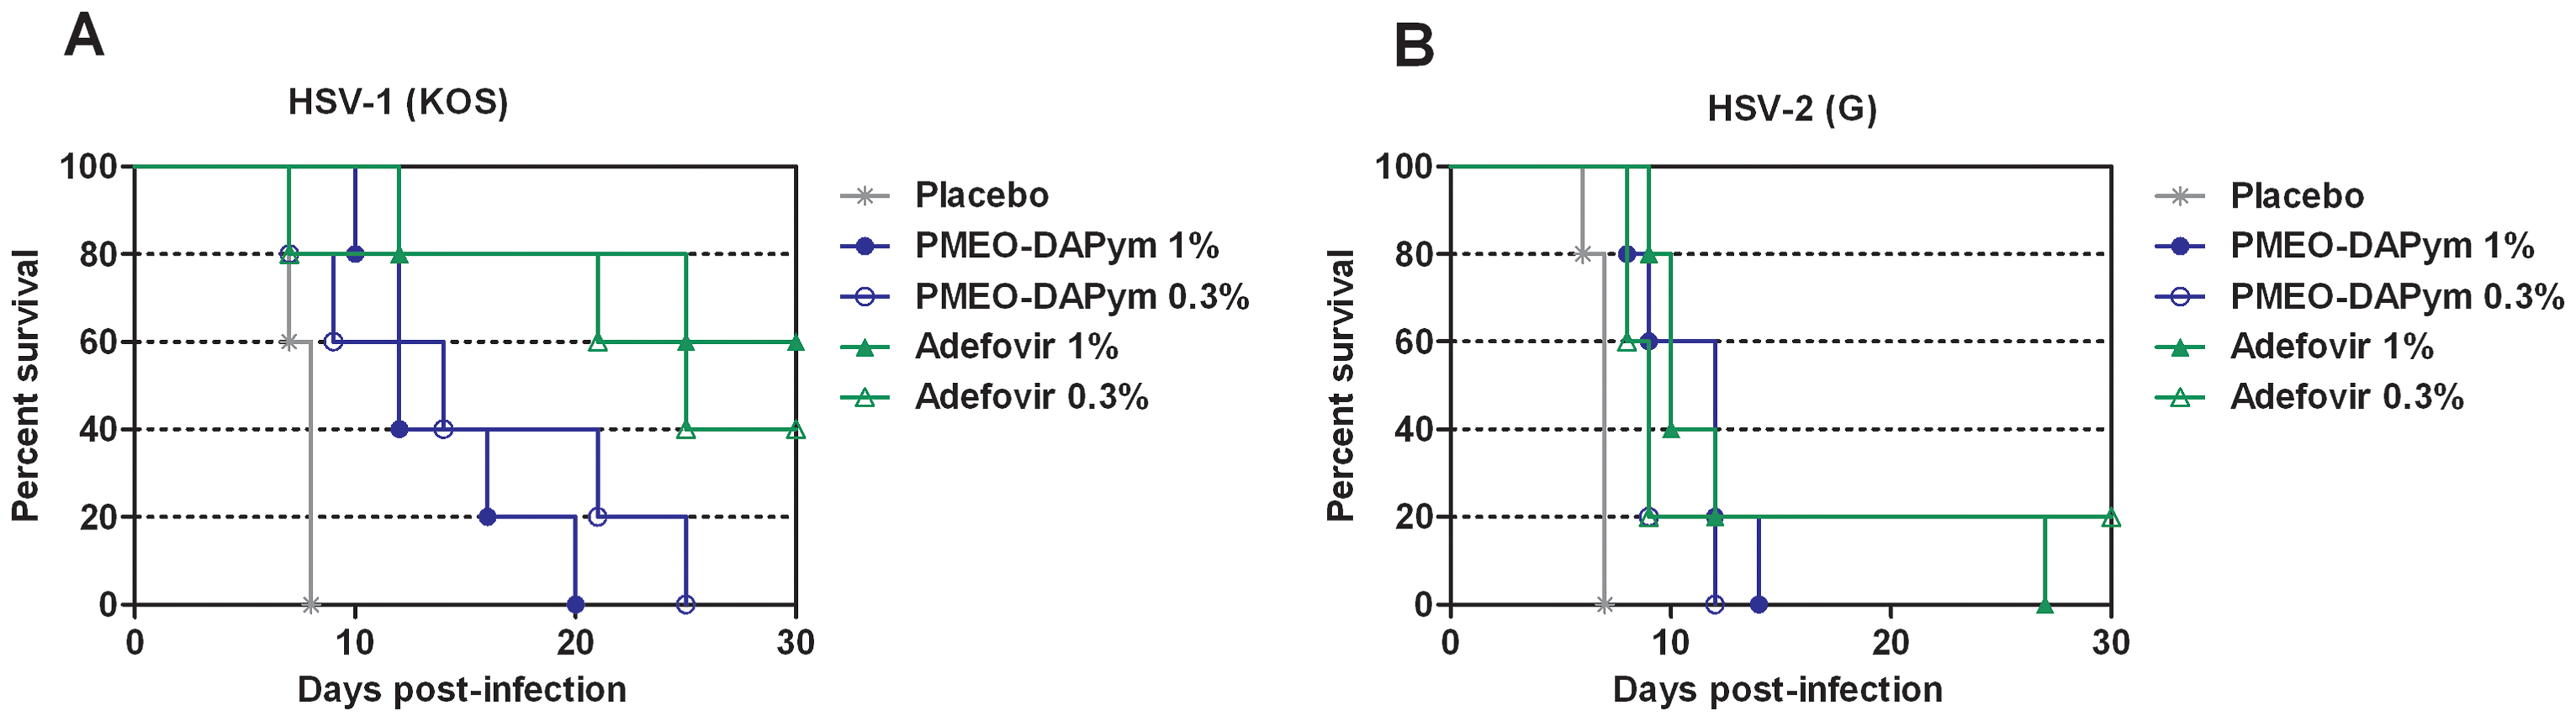 Effects of adefovir and PMEO-DAPym on mortality in mice inoculated with HSV-1 or HSV-2.